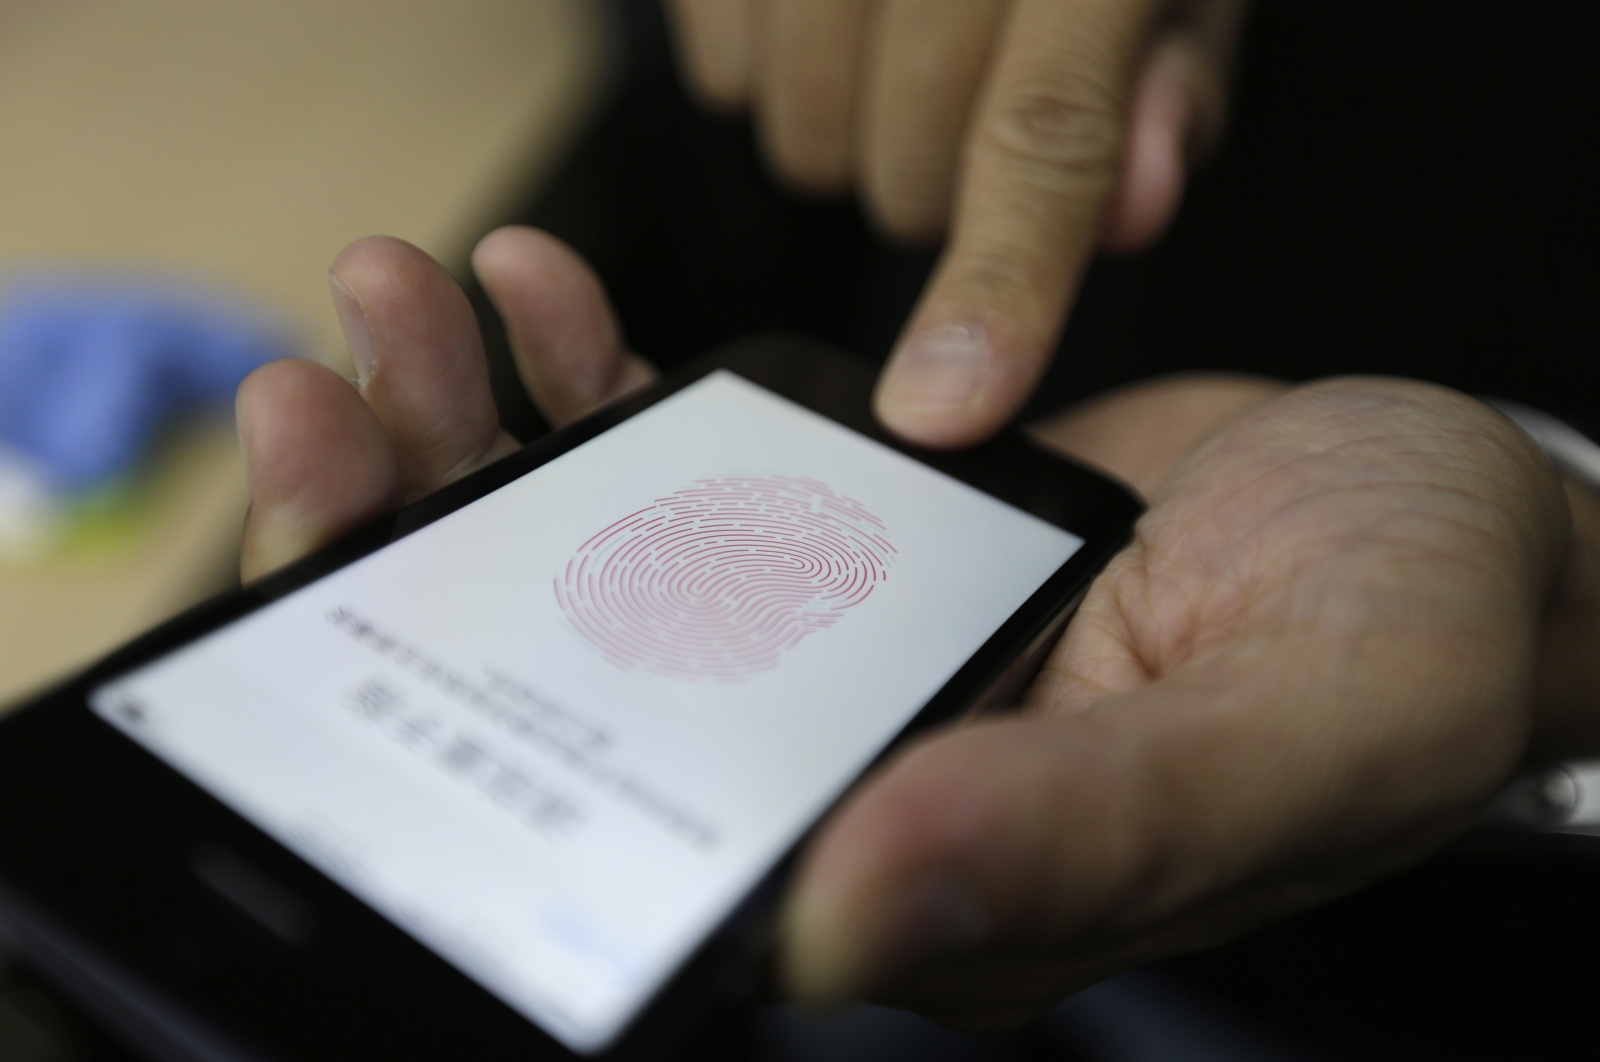 iPhone Touch ID lock screen security